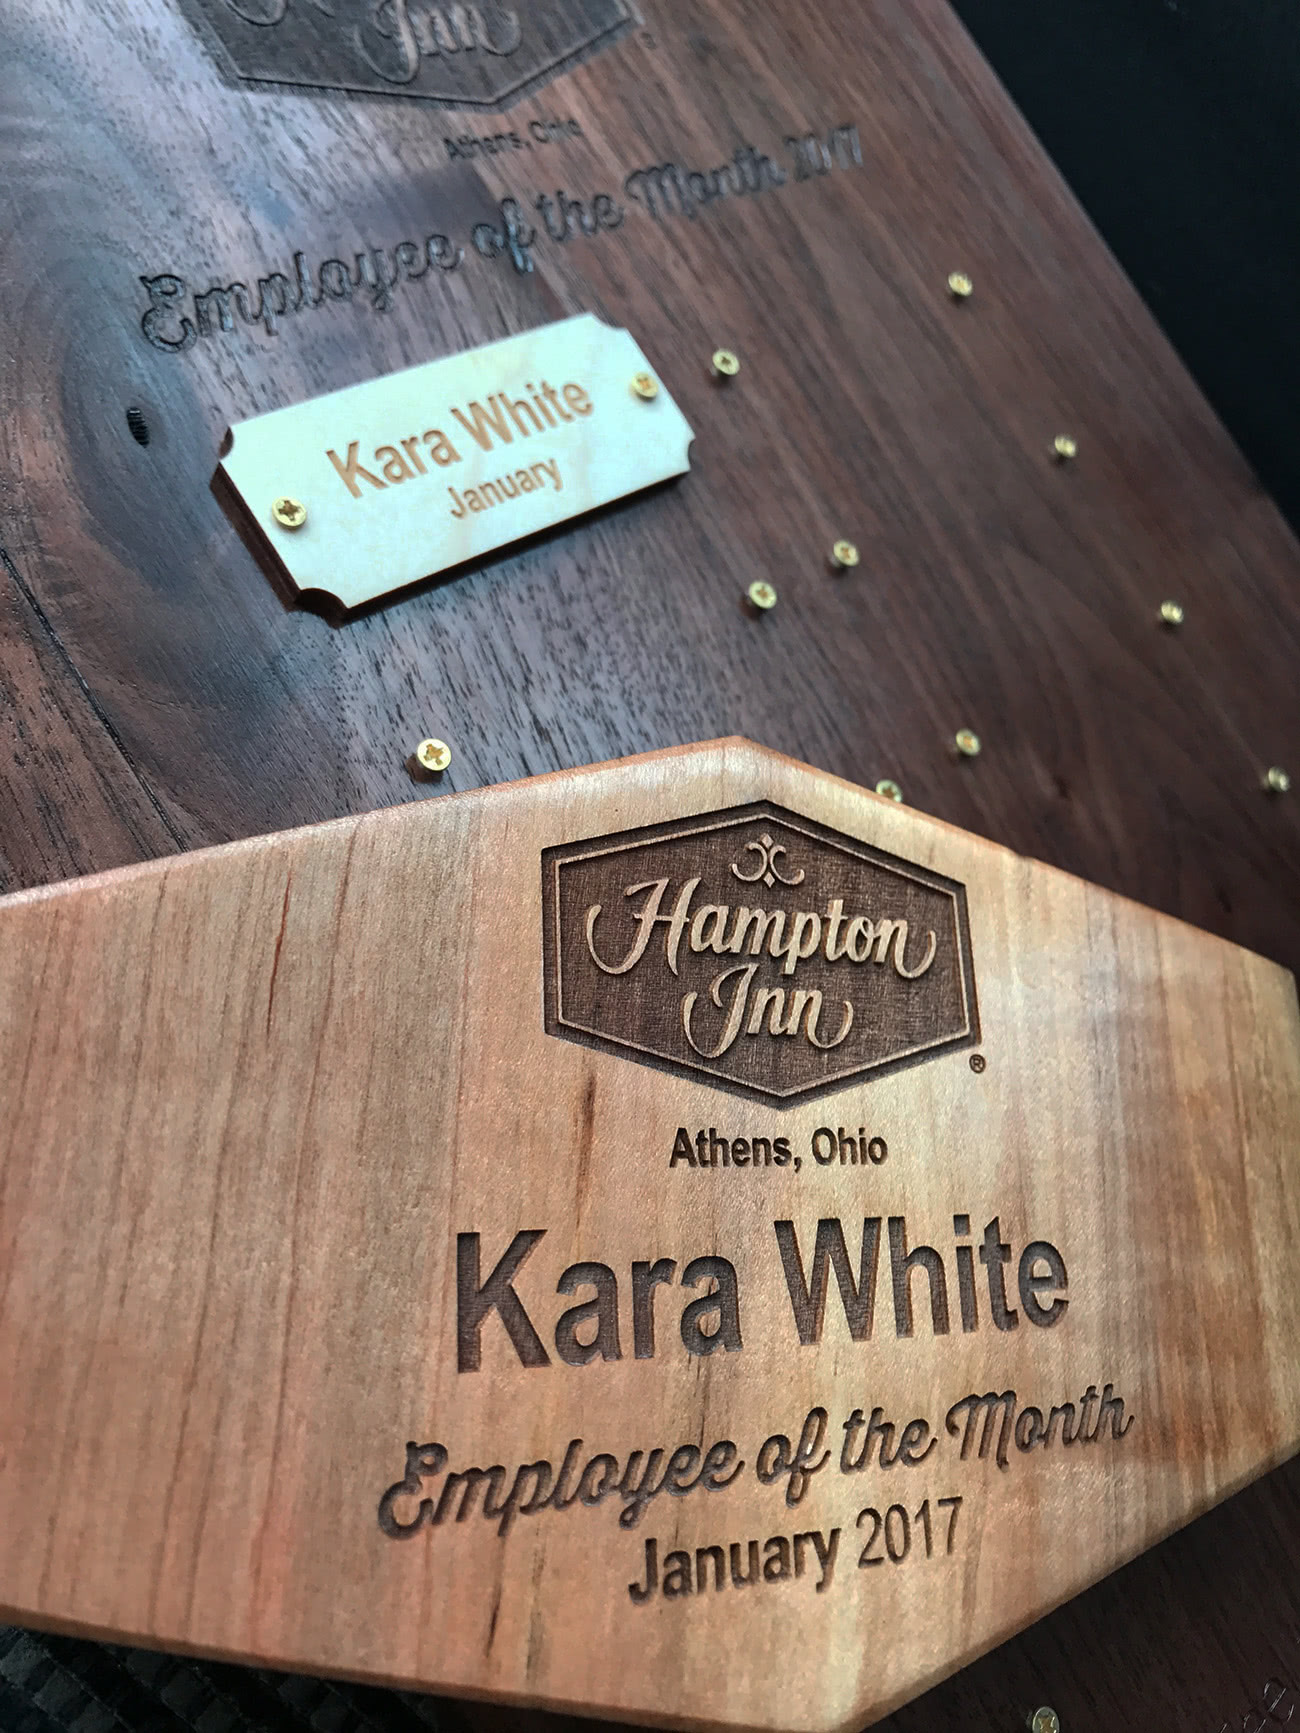 Hampton Inn Employee of the Month plaque and award by Red Tail Design